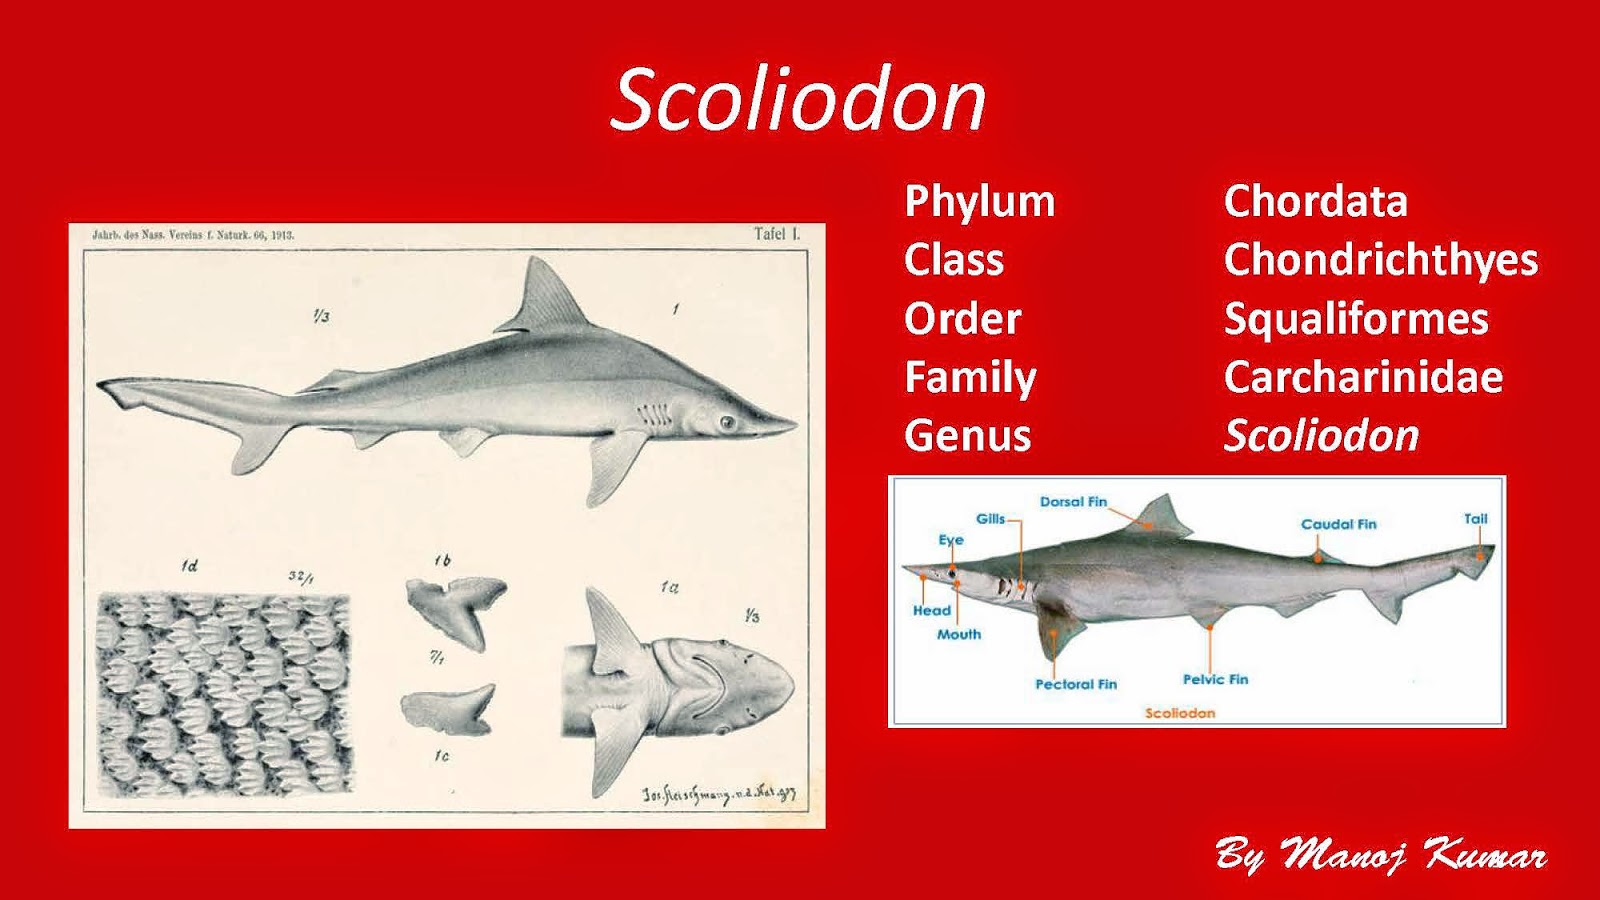 Shelford tutorials digestive system of scoliodon digestive system of scoliodon ccuart Image collections